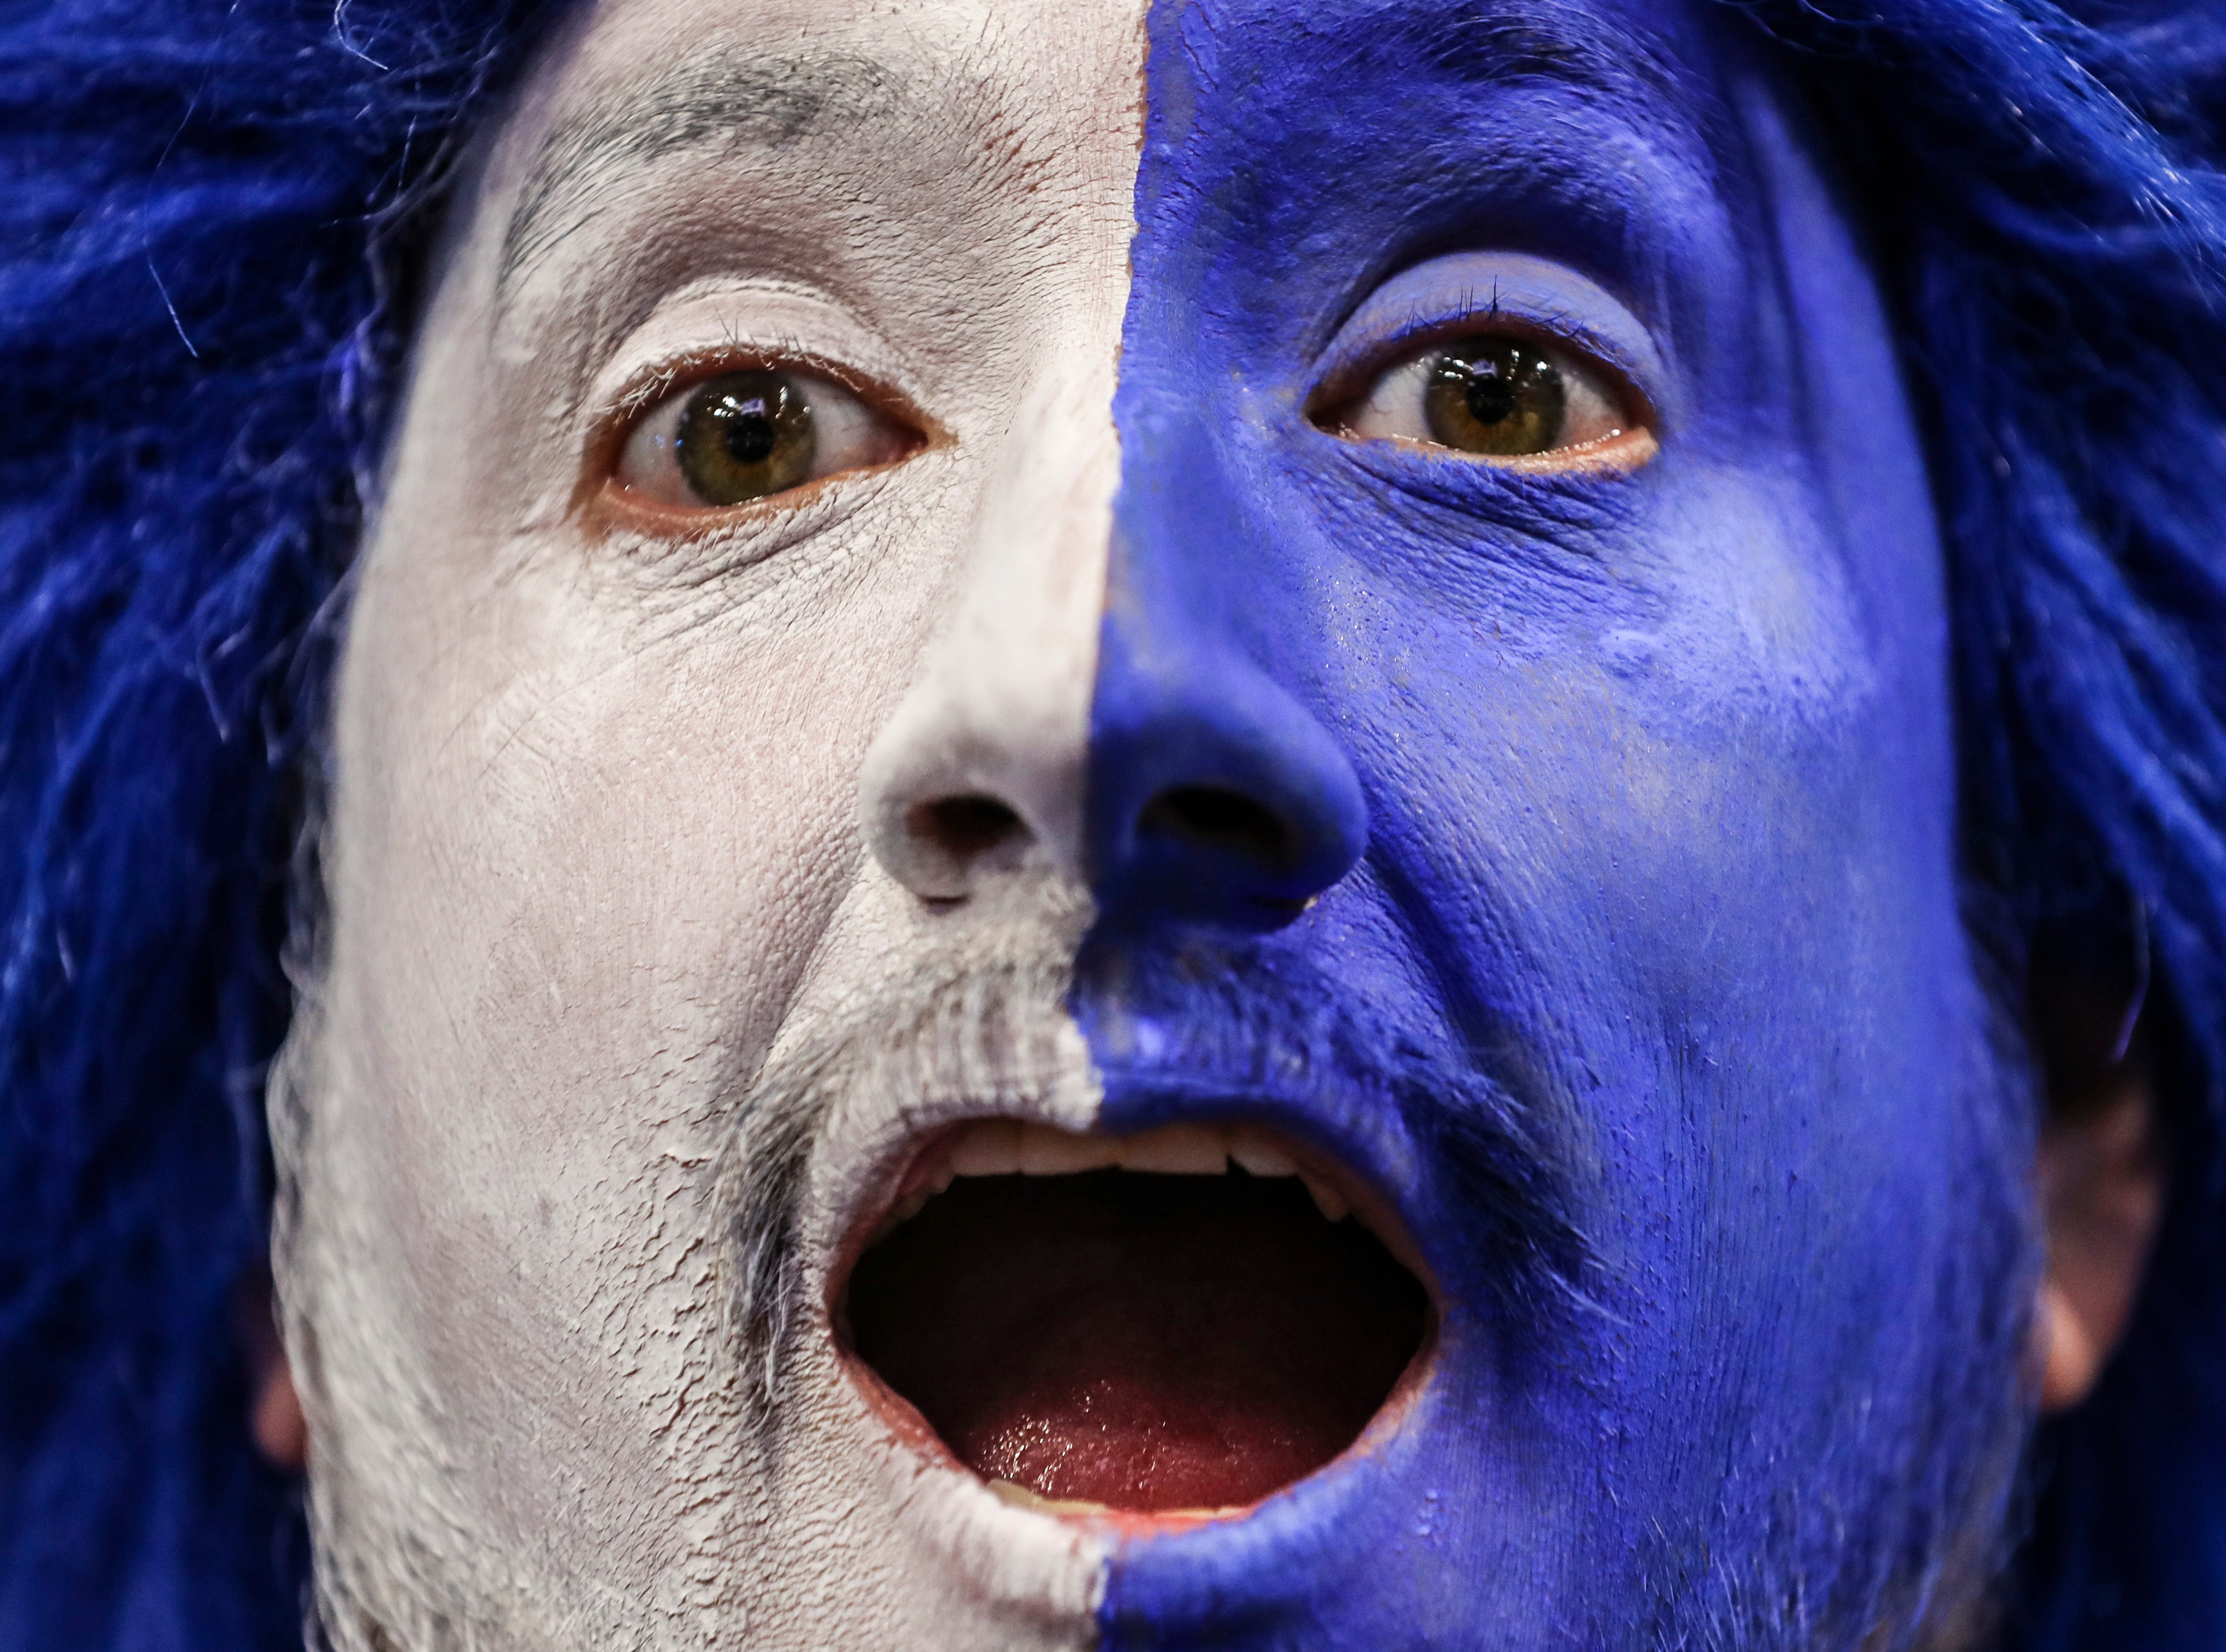 Kentucky fan Josh Henry is painted up for the game against South Carolina Tuesday night at Rupp Arena. Feb. 5, 2019